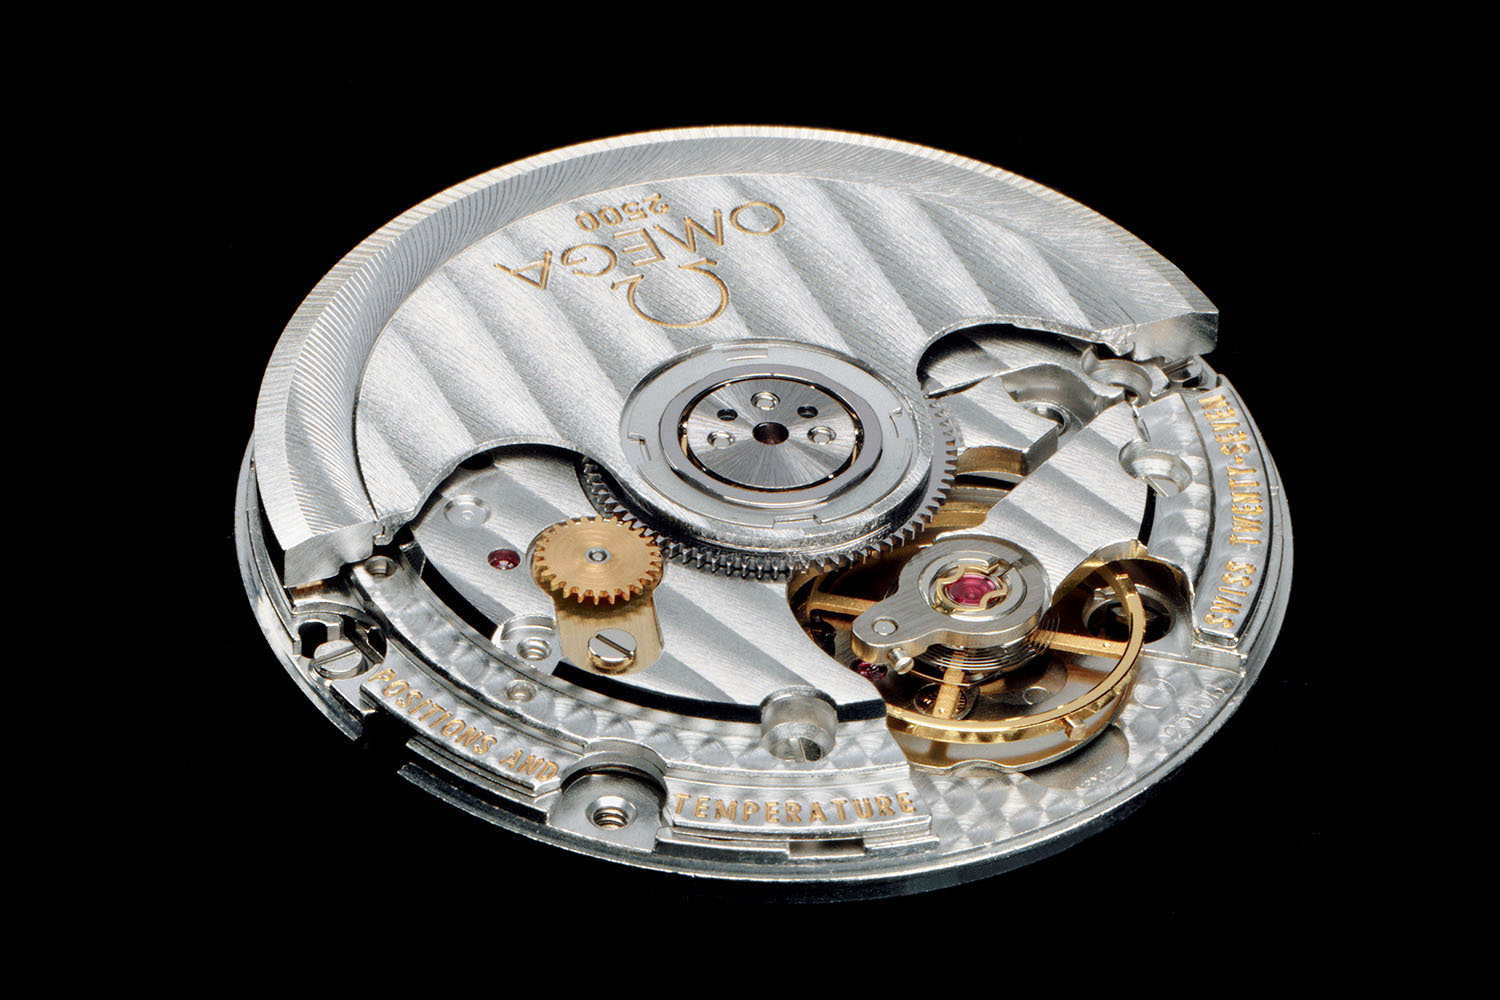 Omega Calibre 2500 Co-Axial escapement